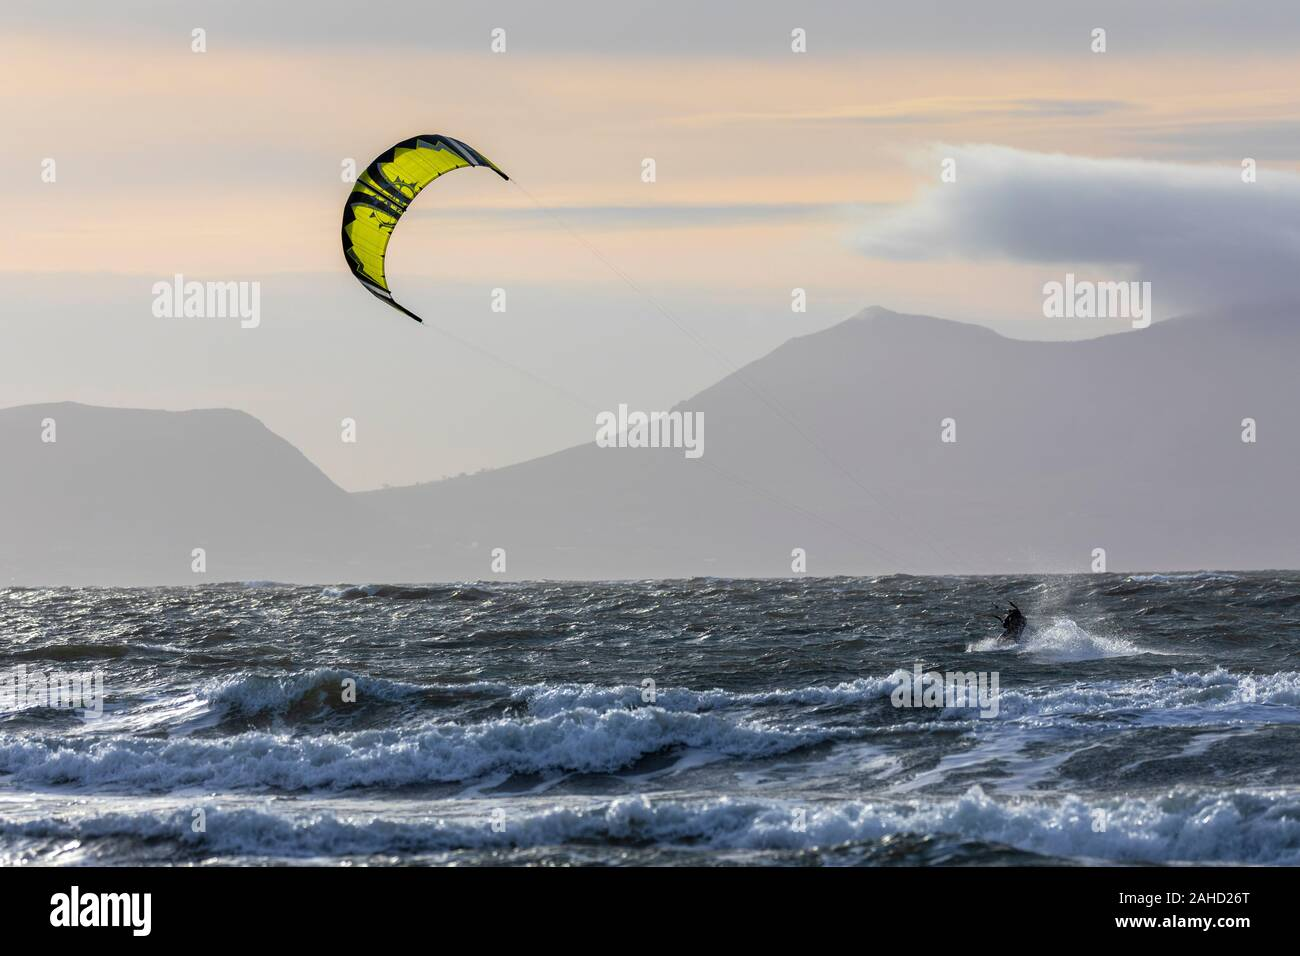 Anglesey, North Wales, 28tht December 2019. UK Weather:  Mild and windy weather at Newborough Beach on the west coast of Anglesey, with speed restrictions on bridges crossing to the island.  Flintshire, Wales. A kite boarder making use of the windy conditions at Newborough Beach with a backdrop of the coastal mountains on the mainland in the distance, Anglesey, Wales © DGDImages/AlamyLiveNews Stock Photo